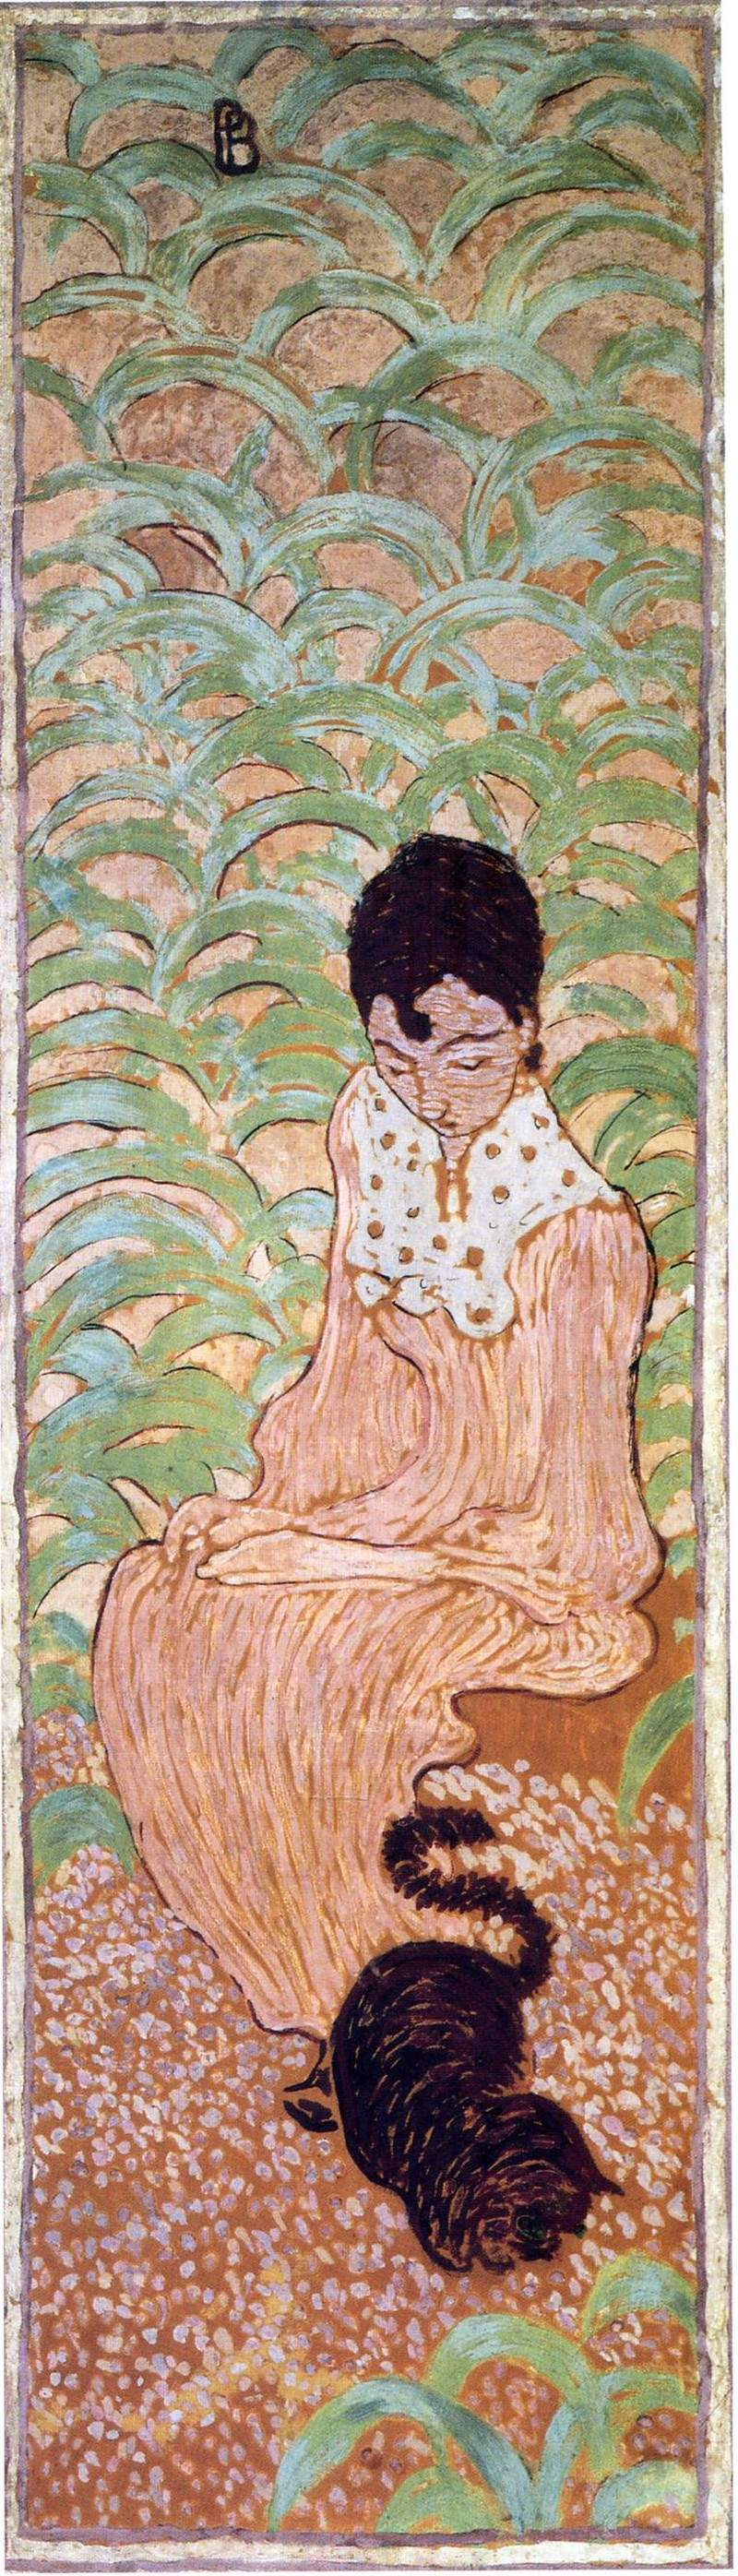 Sitting Woman with a Cat — Пьер Боннар